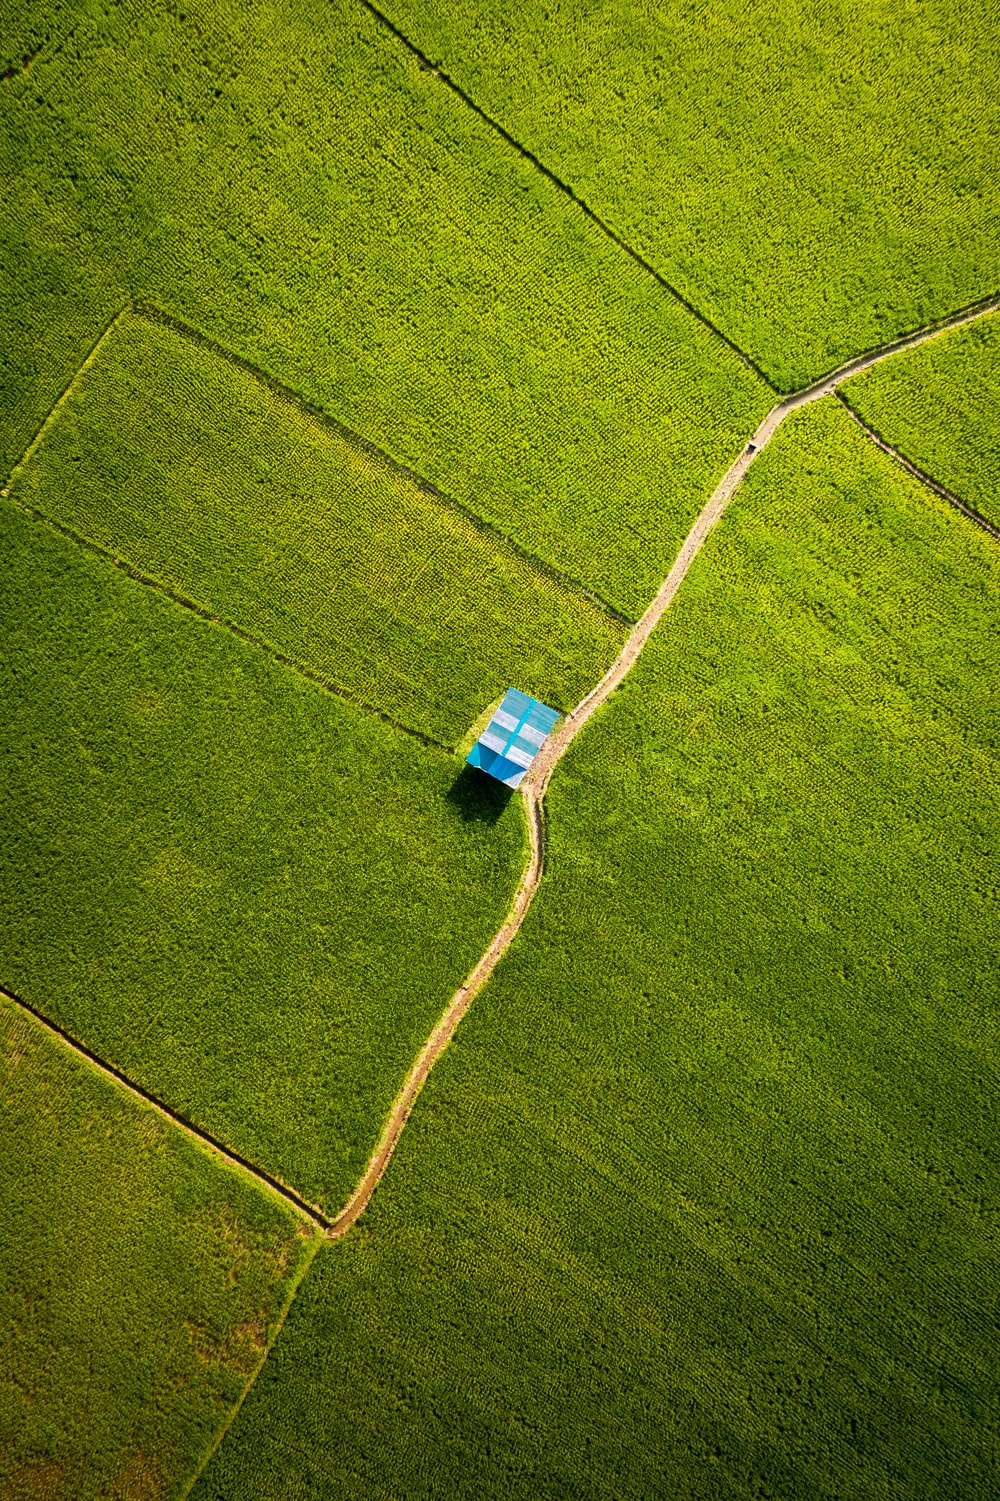 blue and white plastic container on green grass field